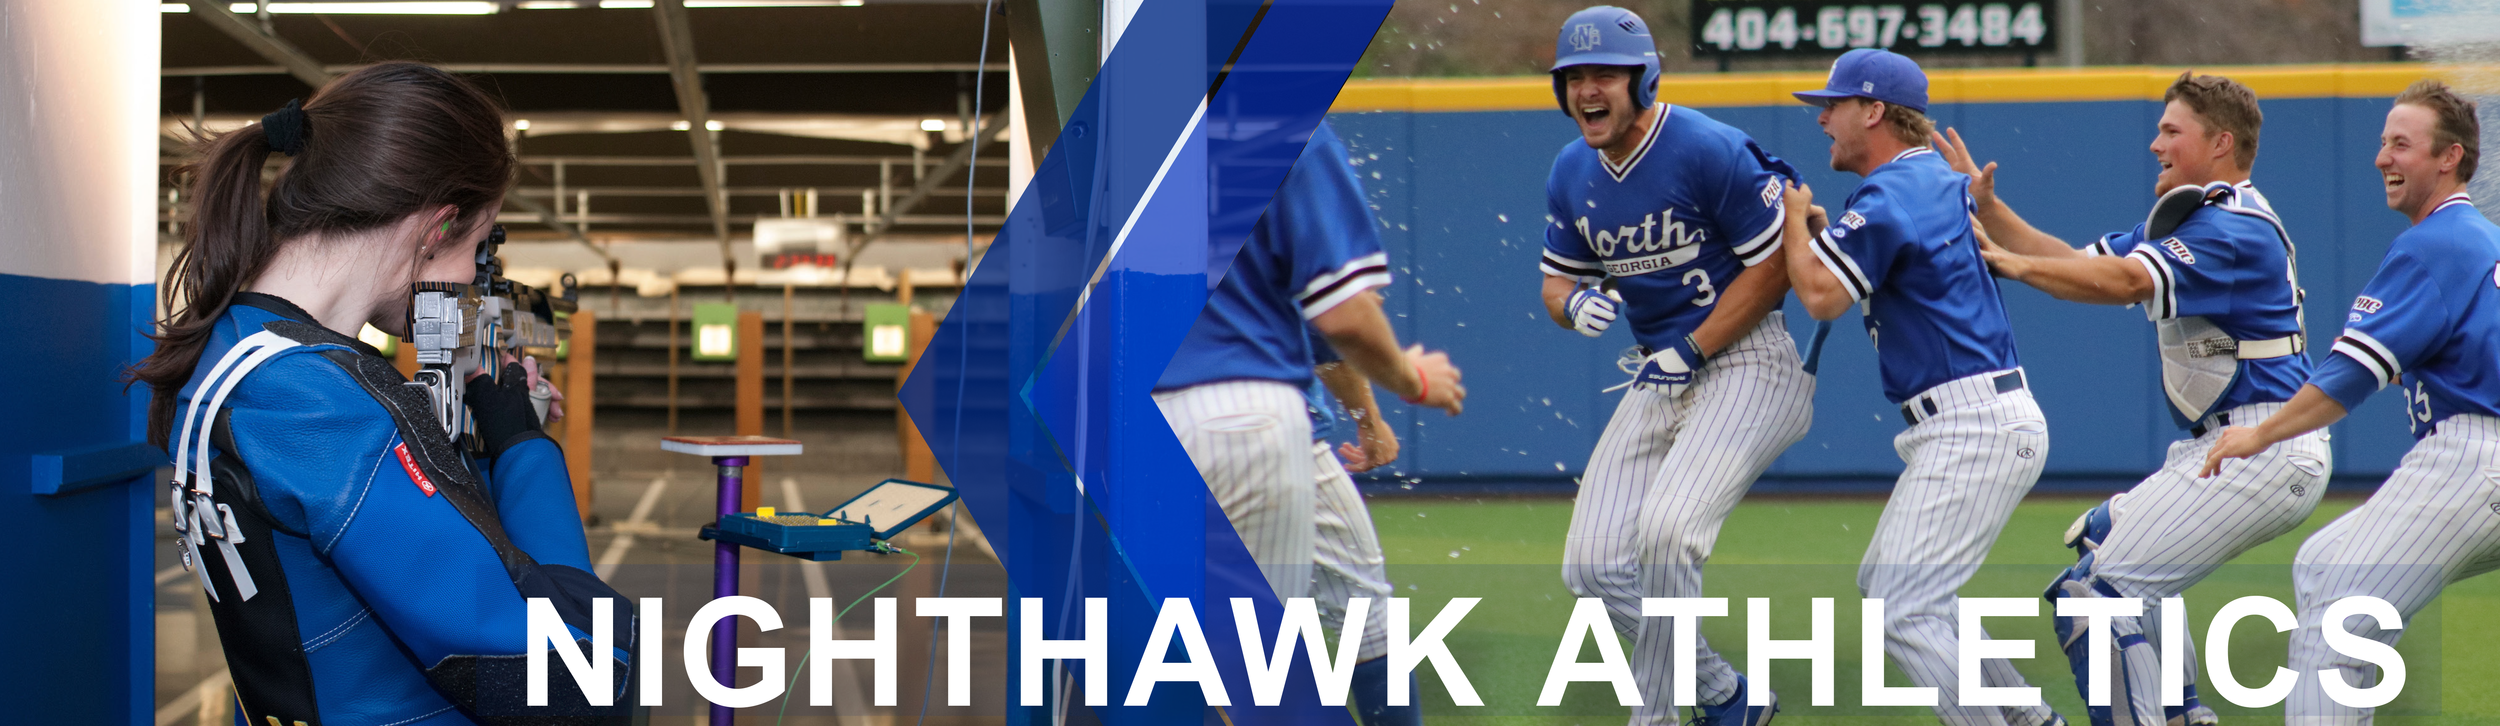 Nighthawk Athletics page banner: Features female rifle team member shooting at a target. Image 2 shows a group photo of the University of North Georgia baseball players celebrating a win.